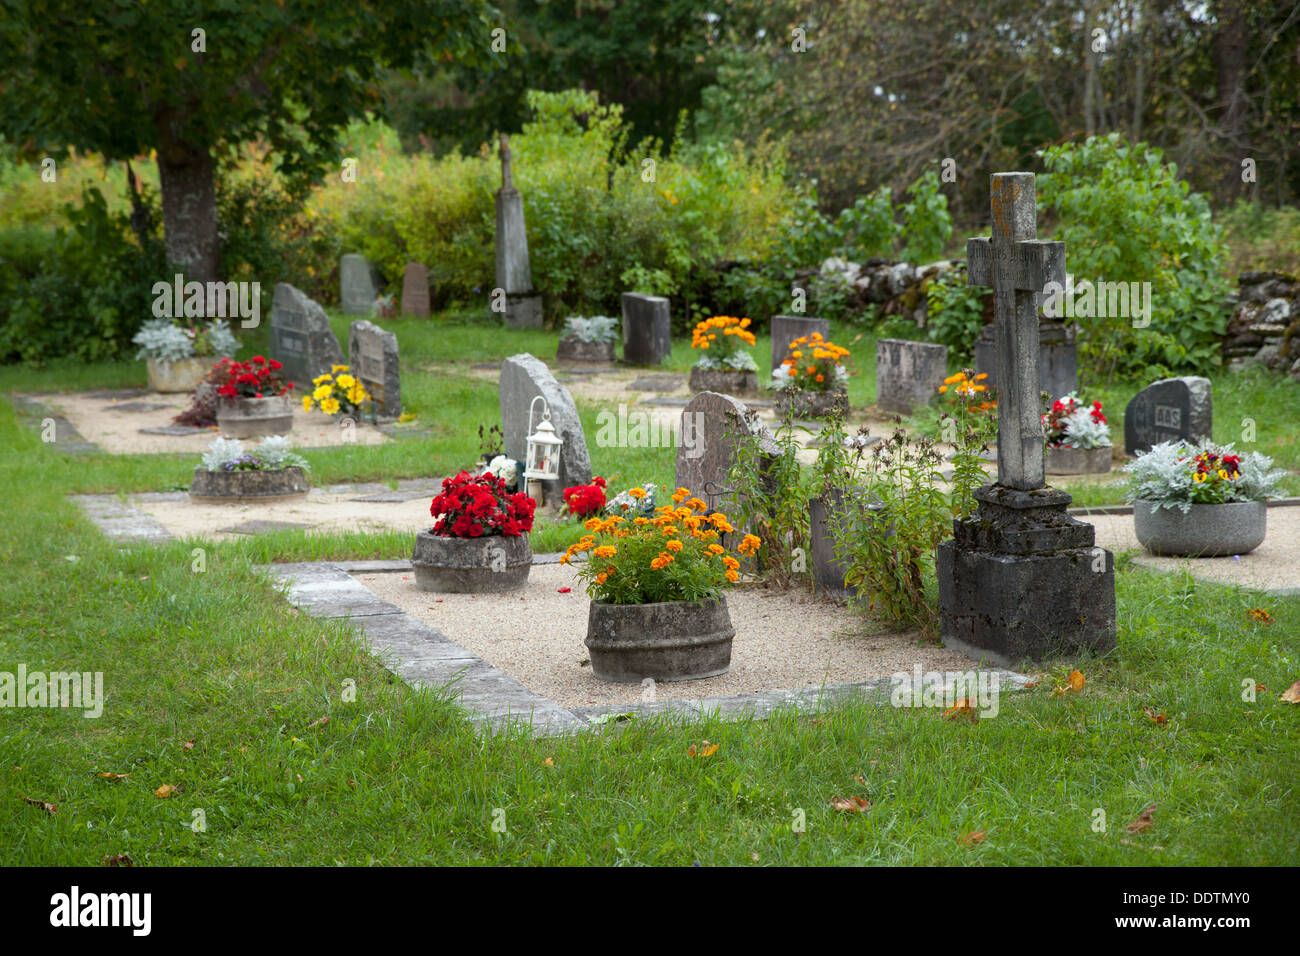 Cemetery with several memorials and flowers - Stock Image